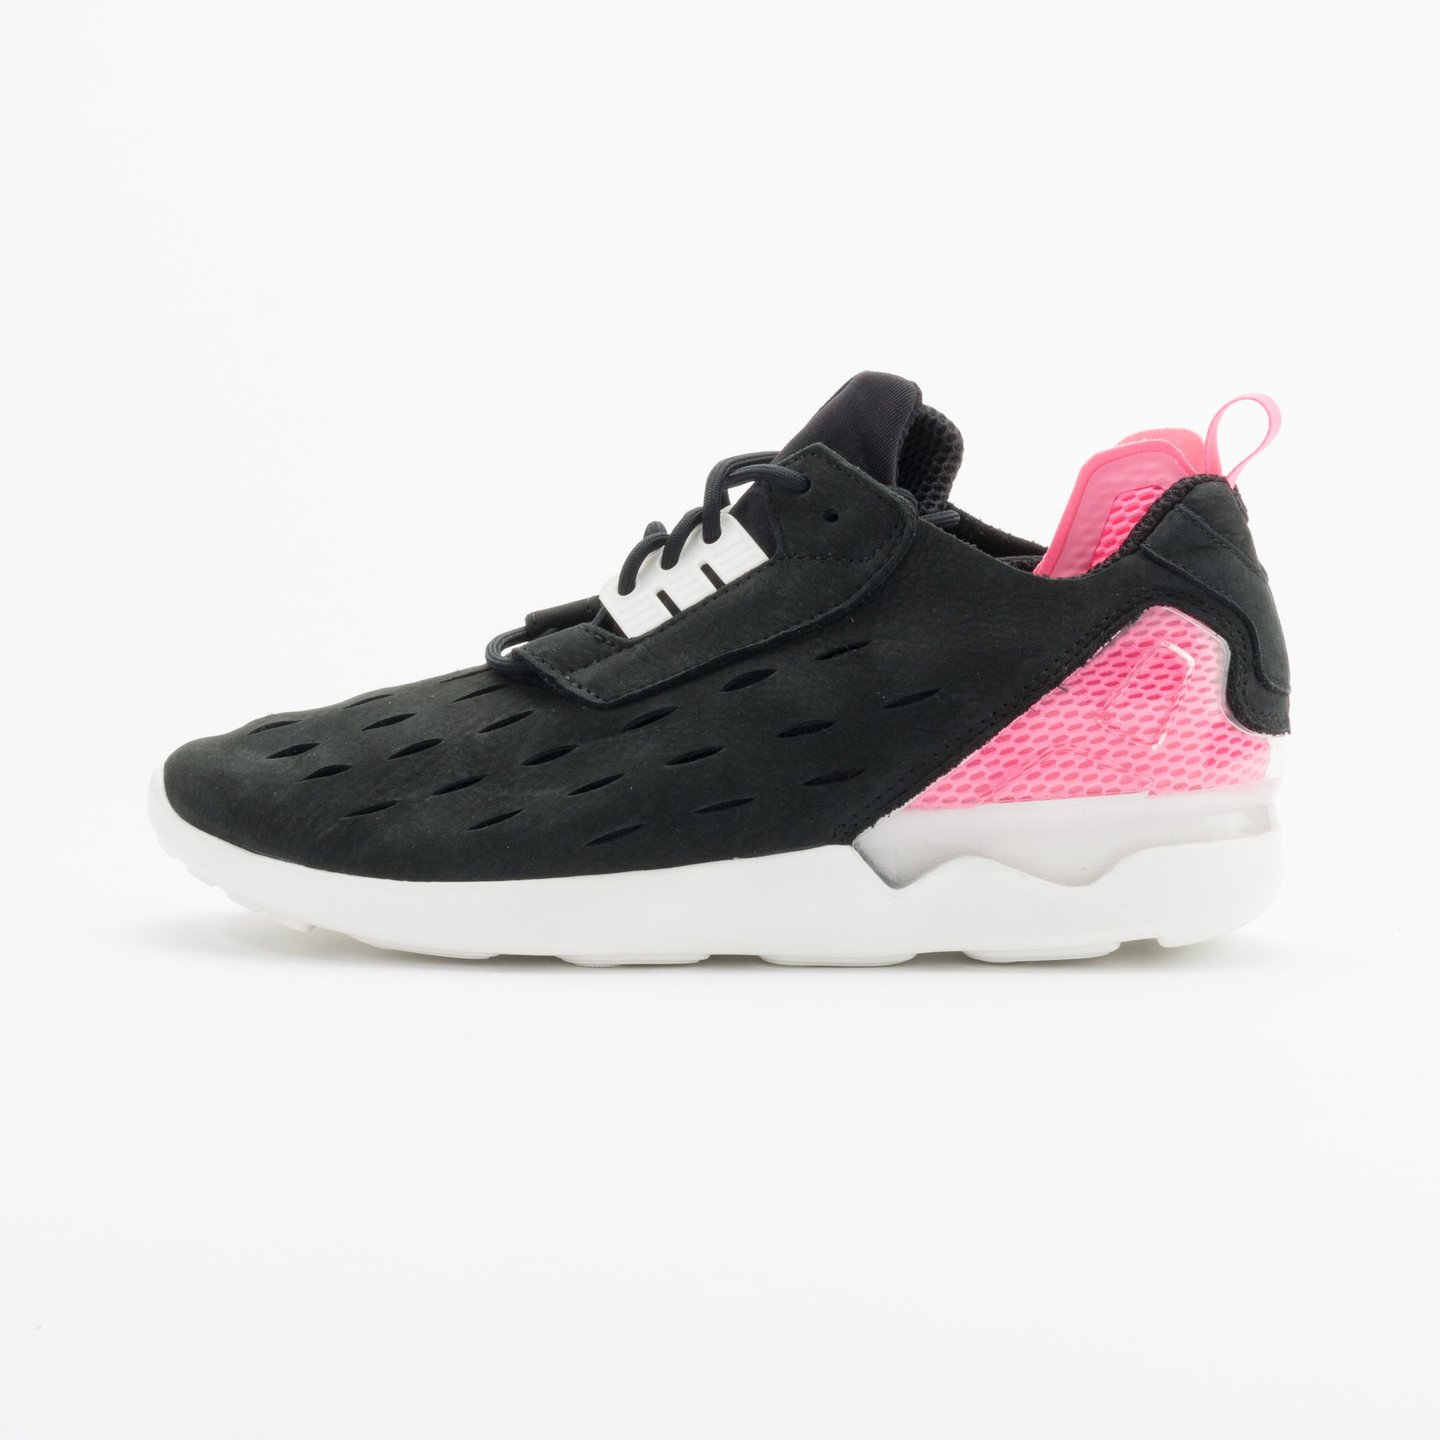 Adidas ZX 8000 Blue Boost Black/Hot-Pink/White B25872-41.33